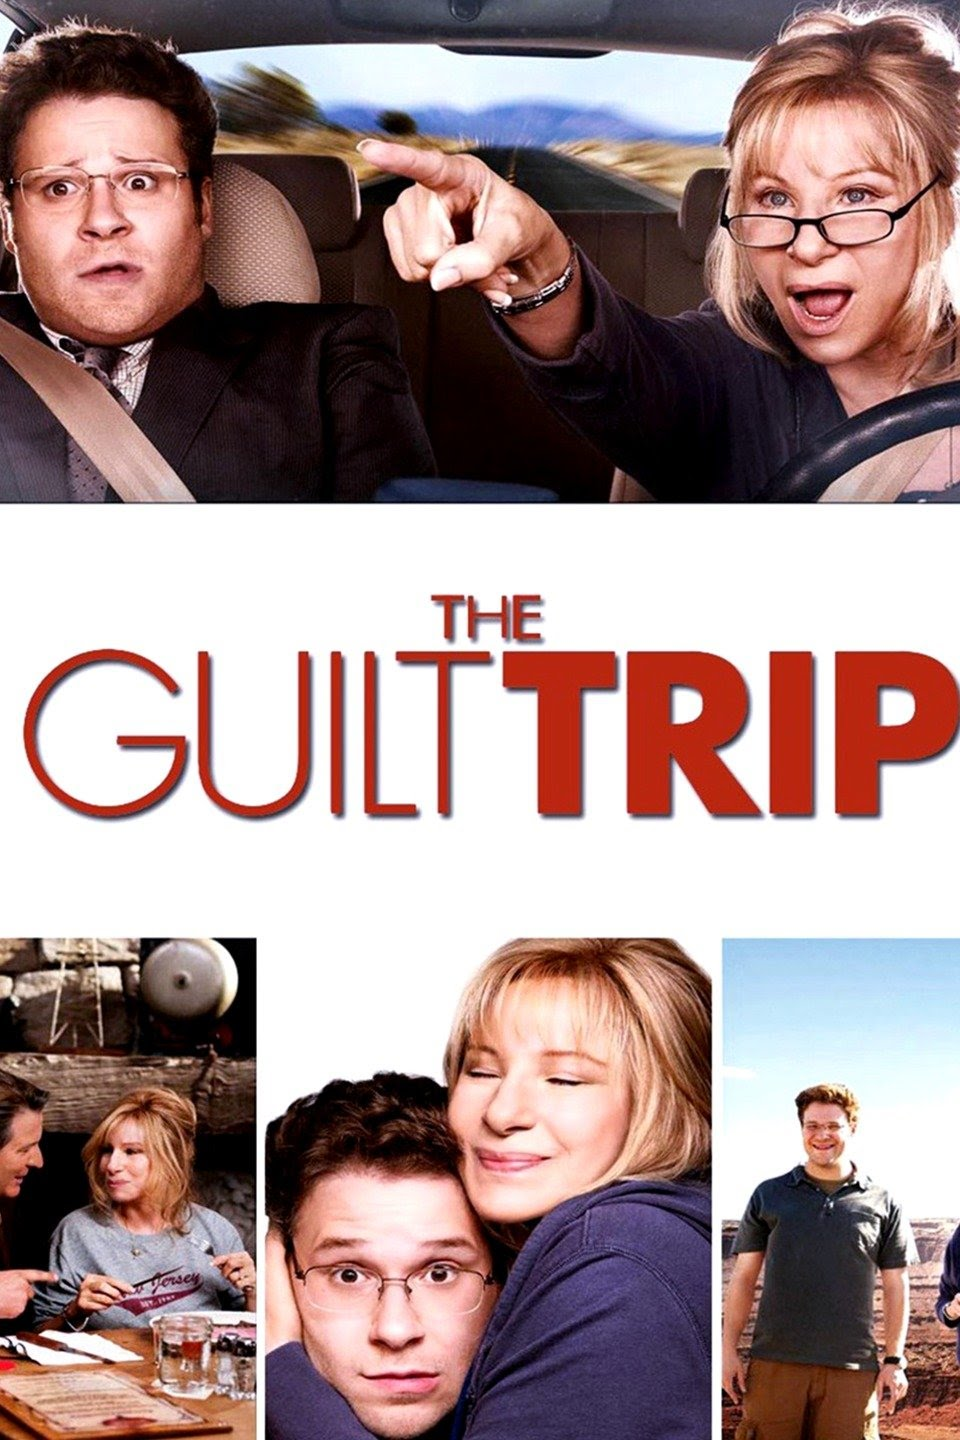 The Guilt Trip (2012) iTunes HD redemption only